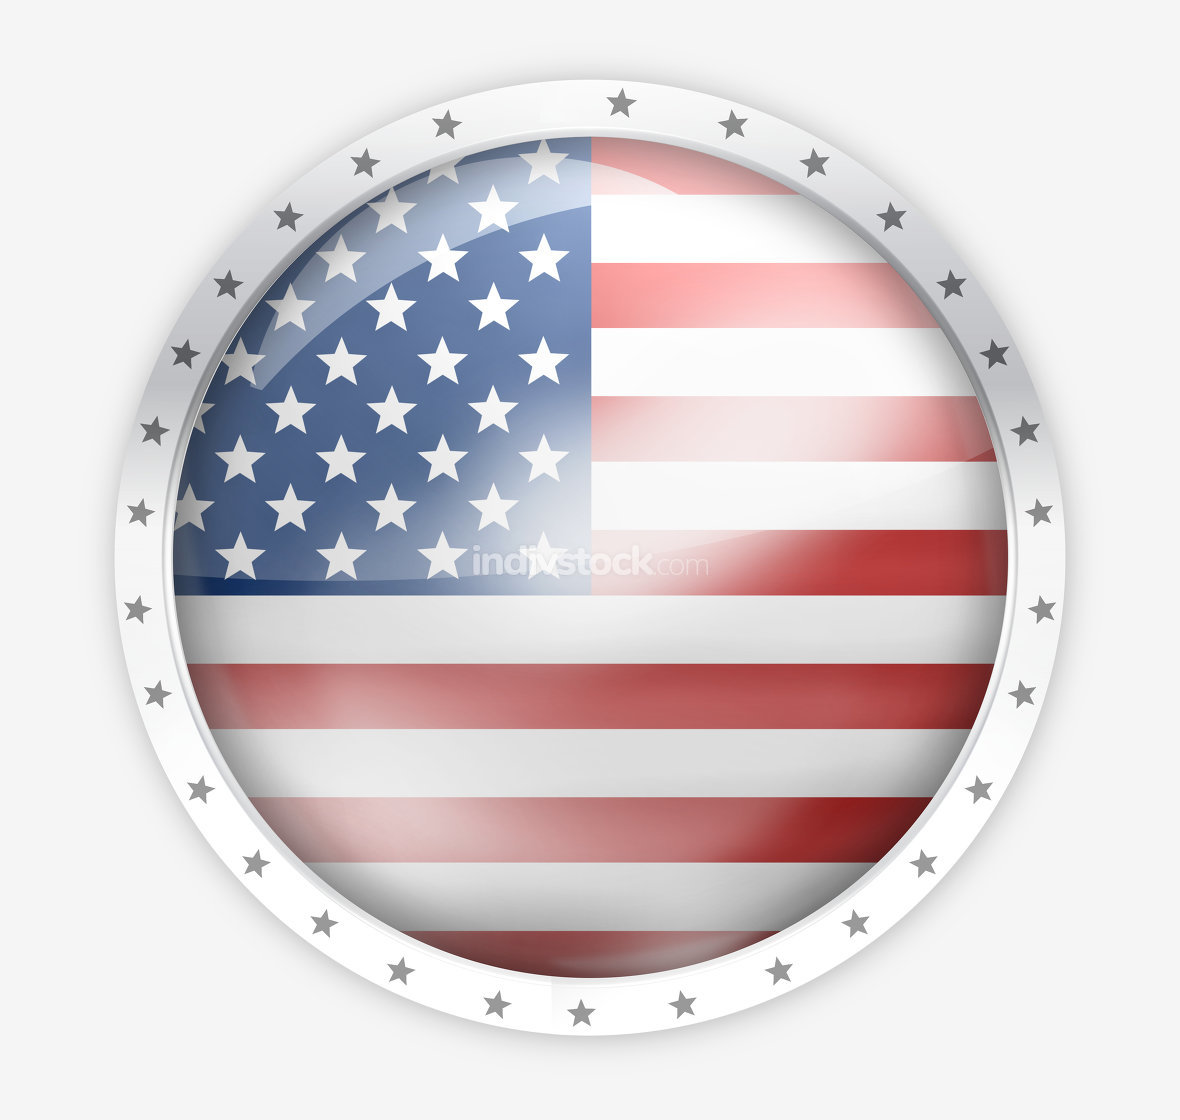 America round opacity button icon 3d render graphic isolated